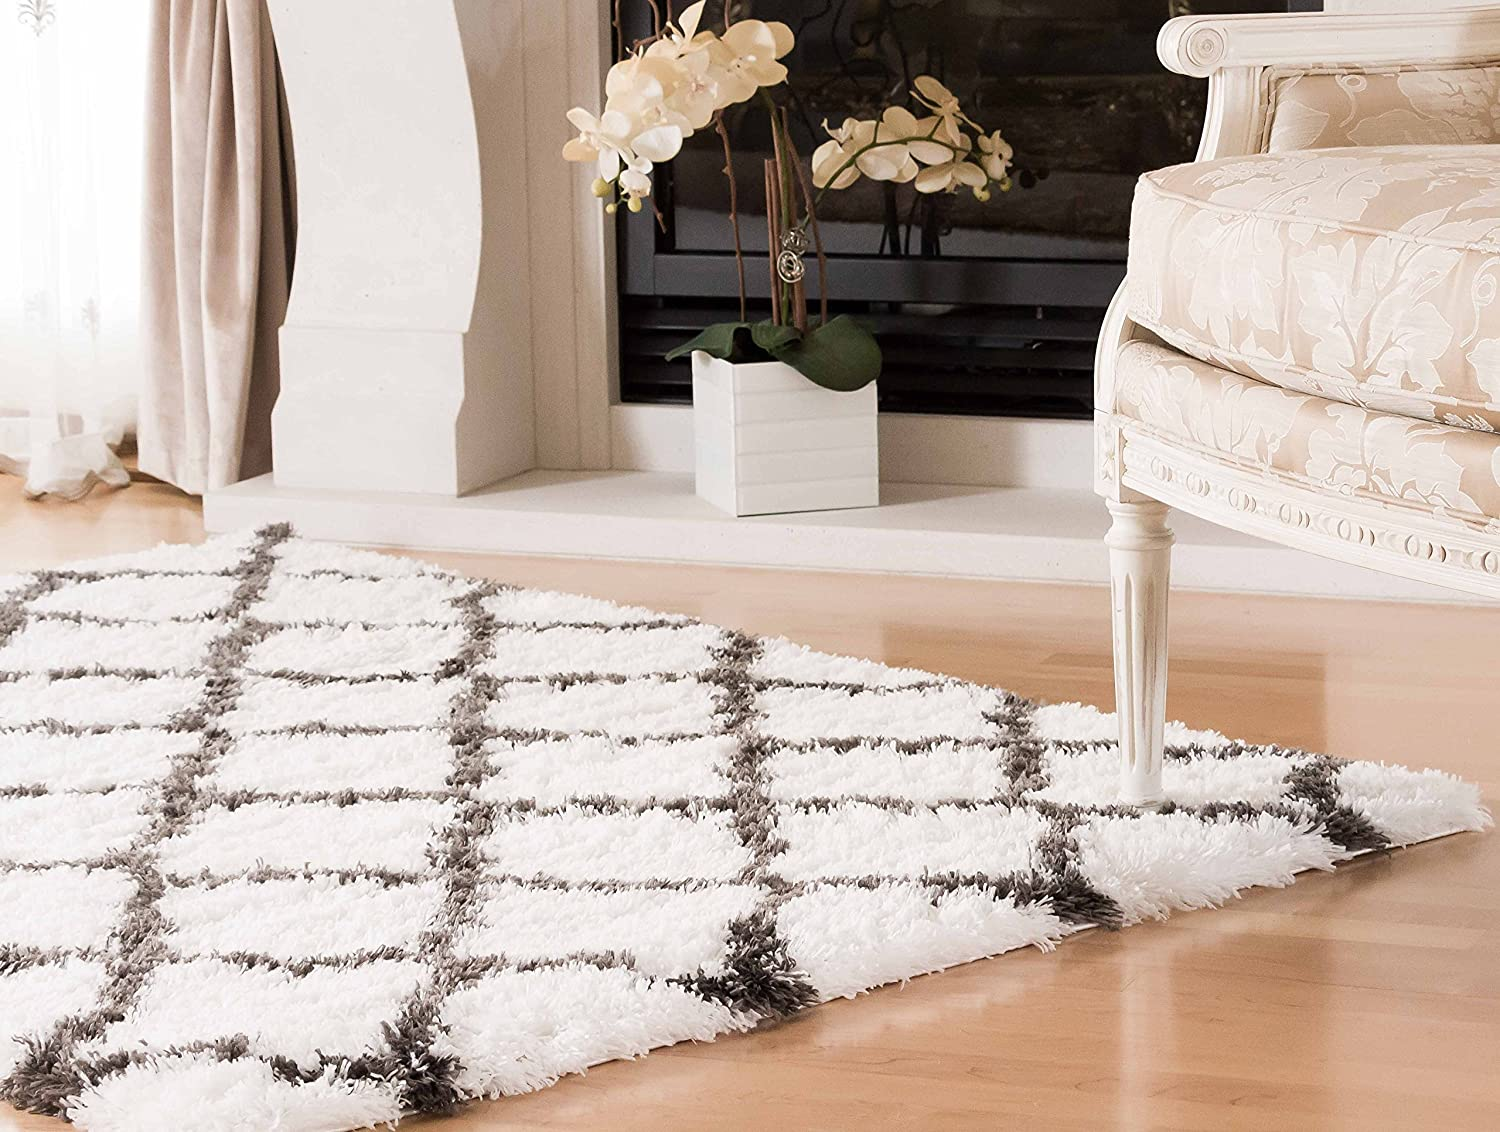 Kerrisdale Turkish Collection Lattice Soft Plush Shag Rug 3x5 AG Home BWC11_WHITE-WHITE-3